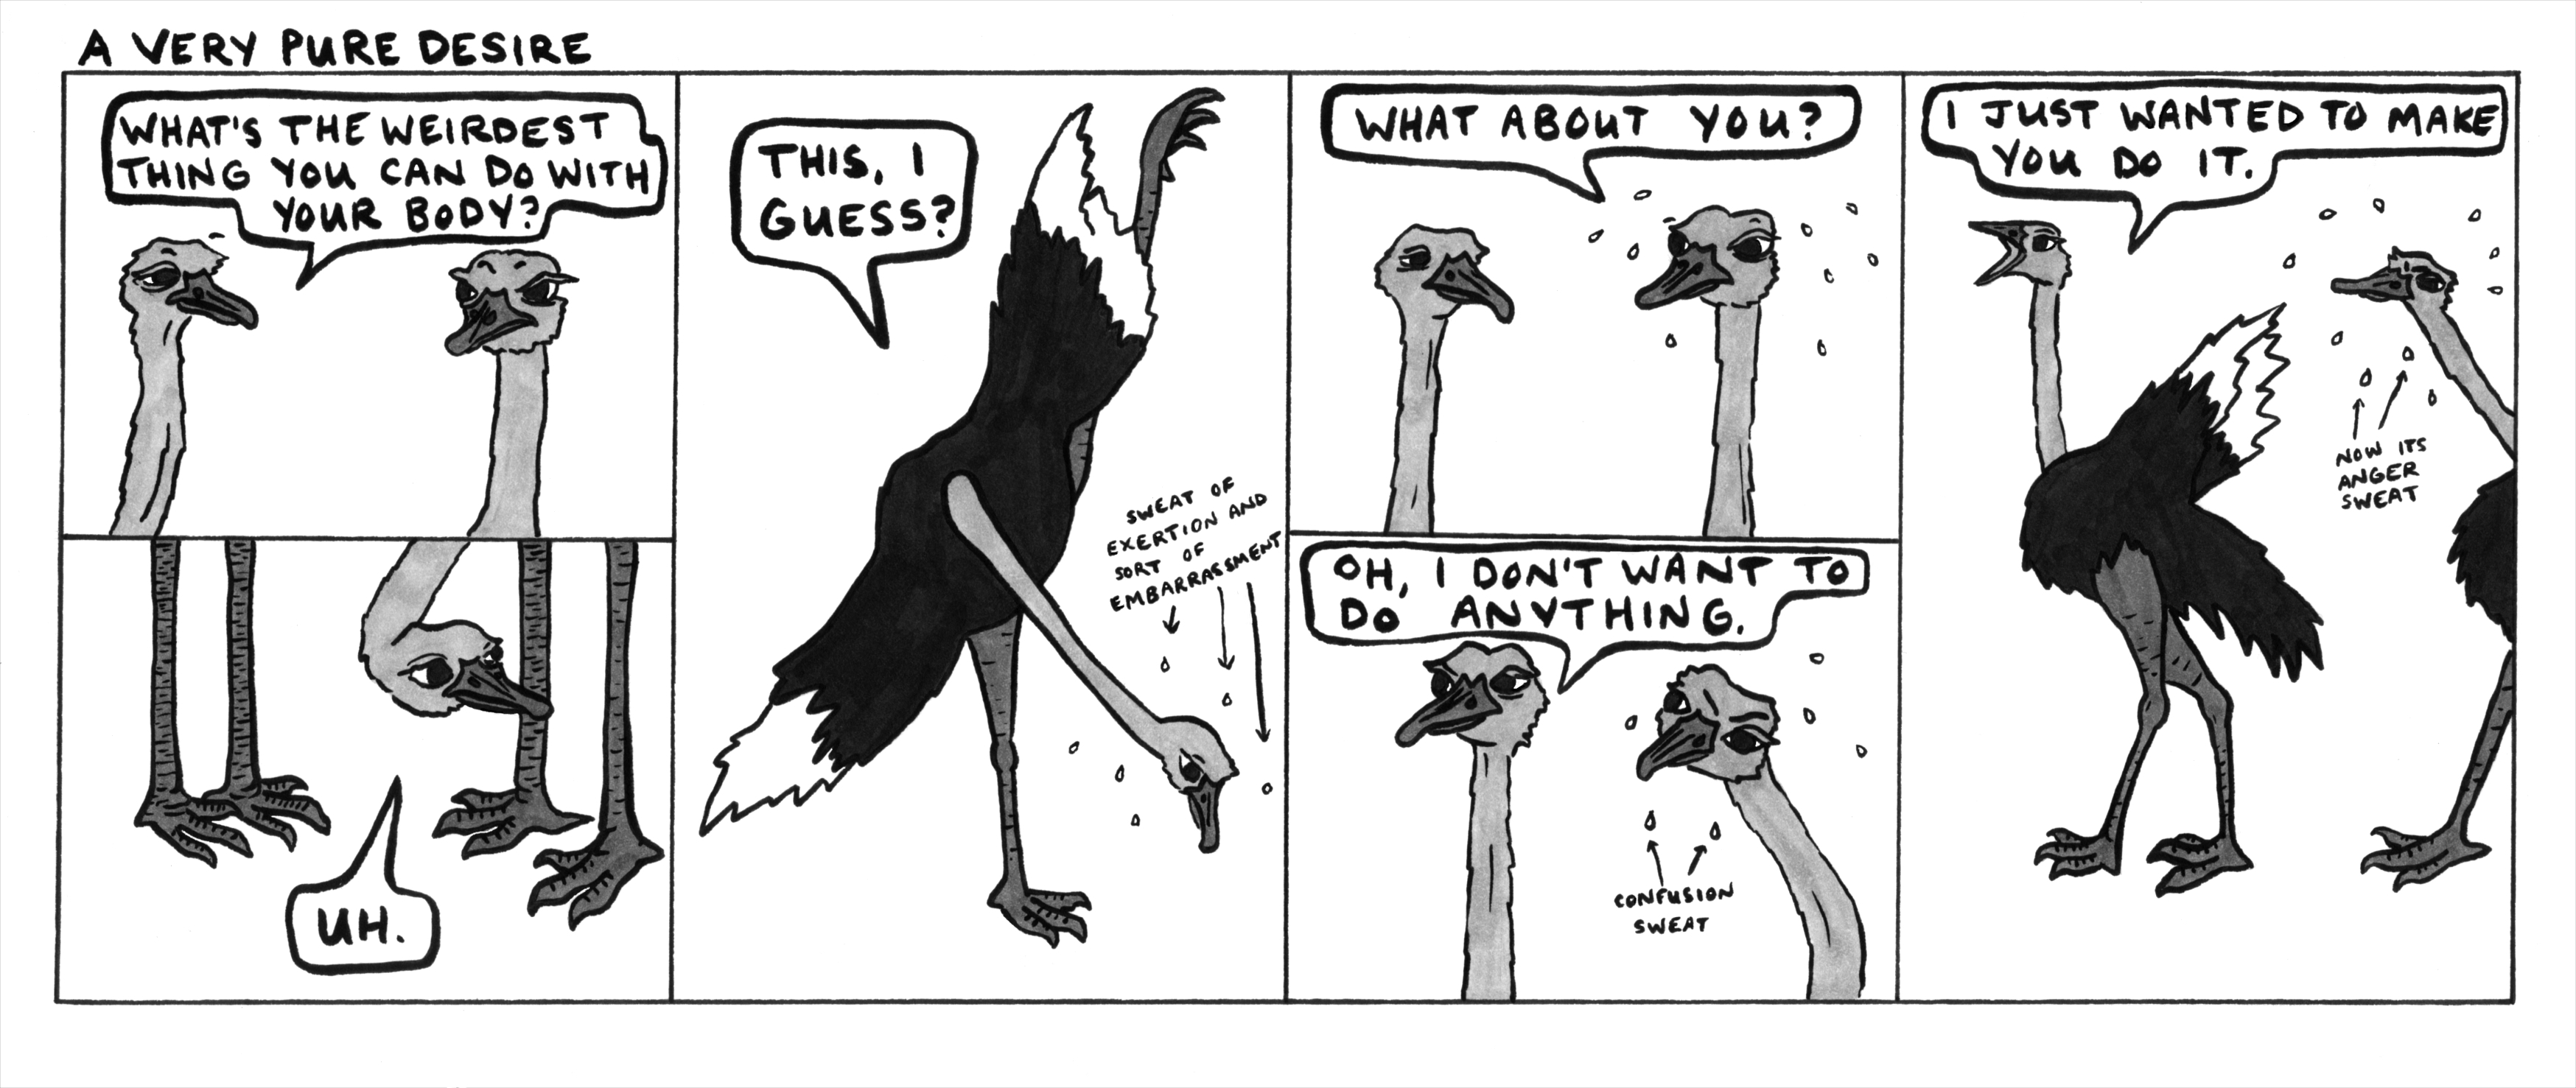 Dave wanted me to draw a road runner this week but I think ostriches are funnier for this particular concept